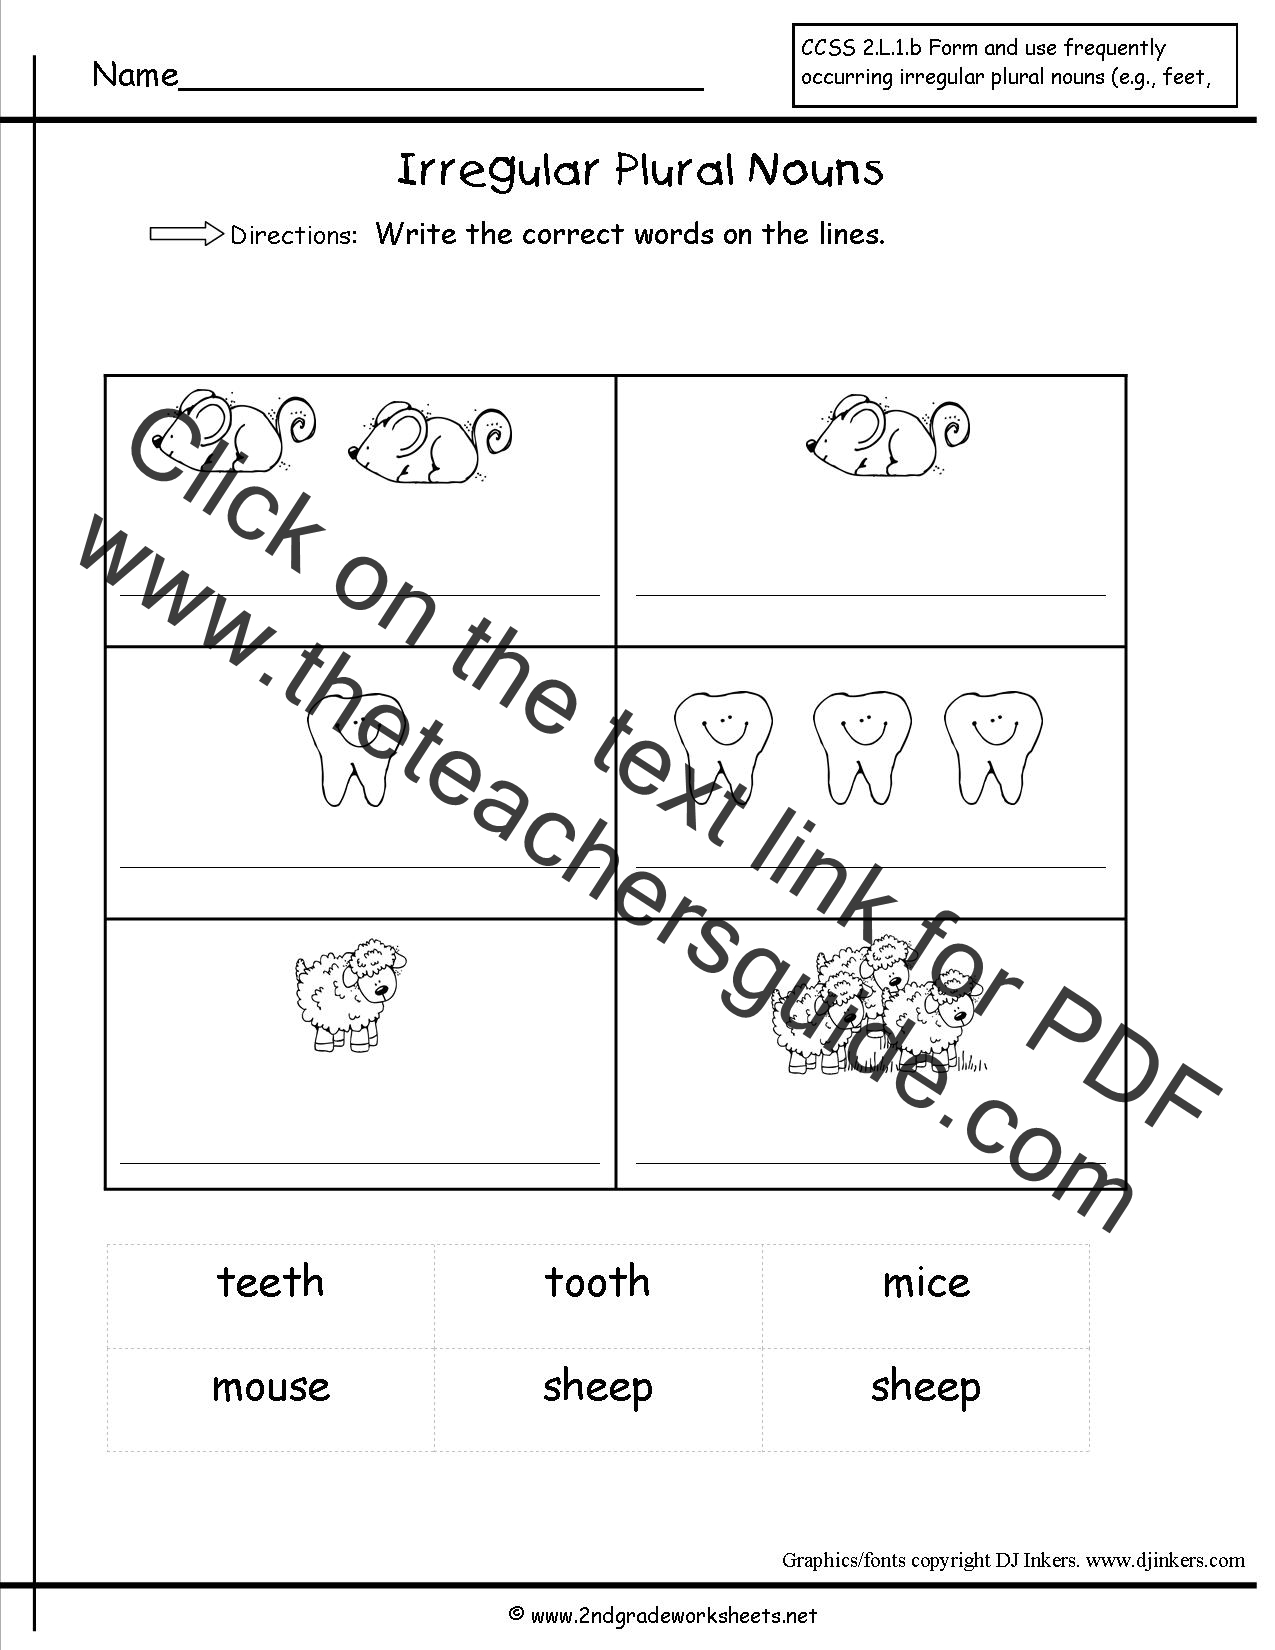 35 Irregular Plural Nouns Worksheet For 3rd Grade